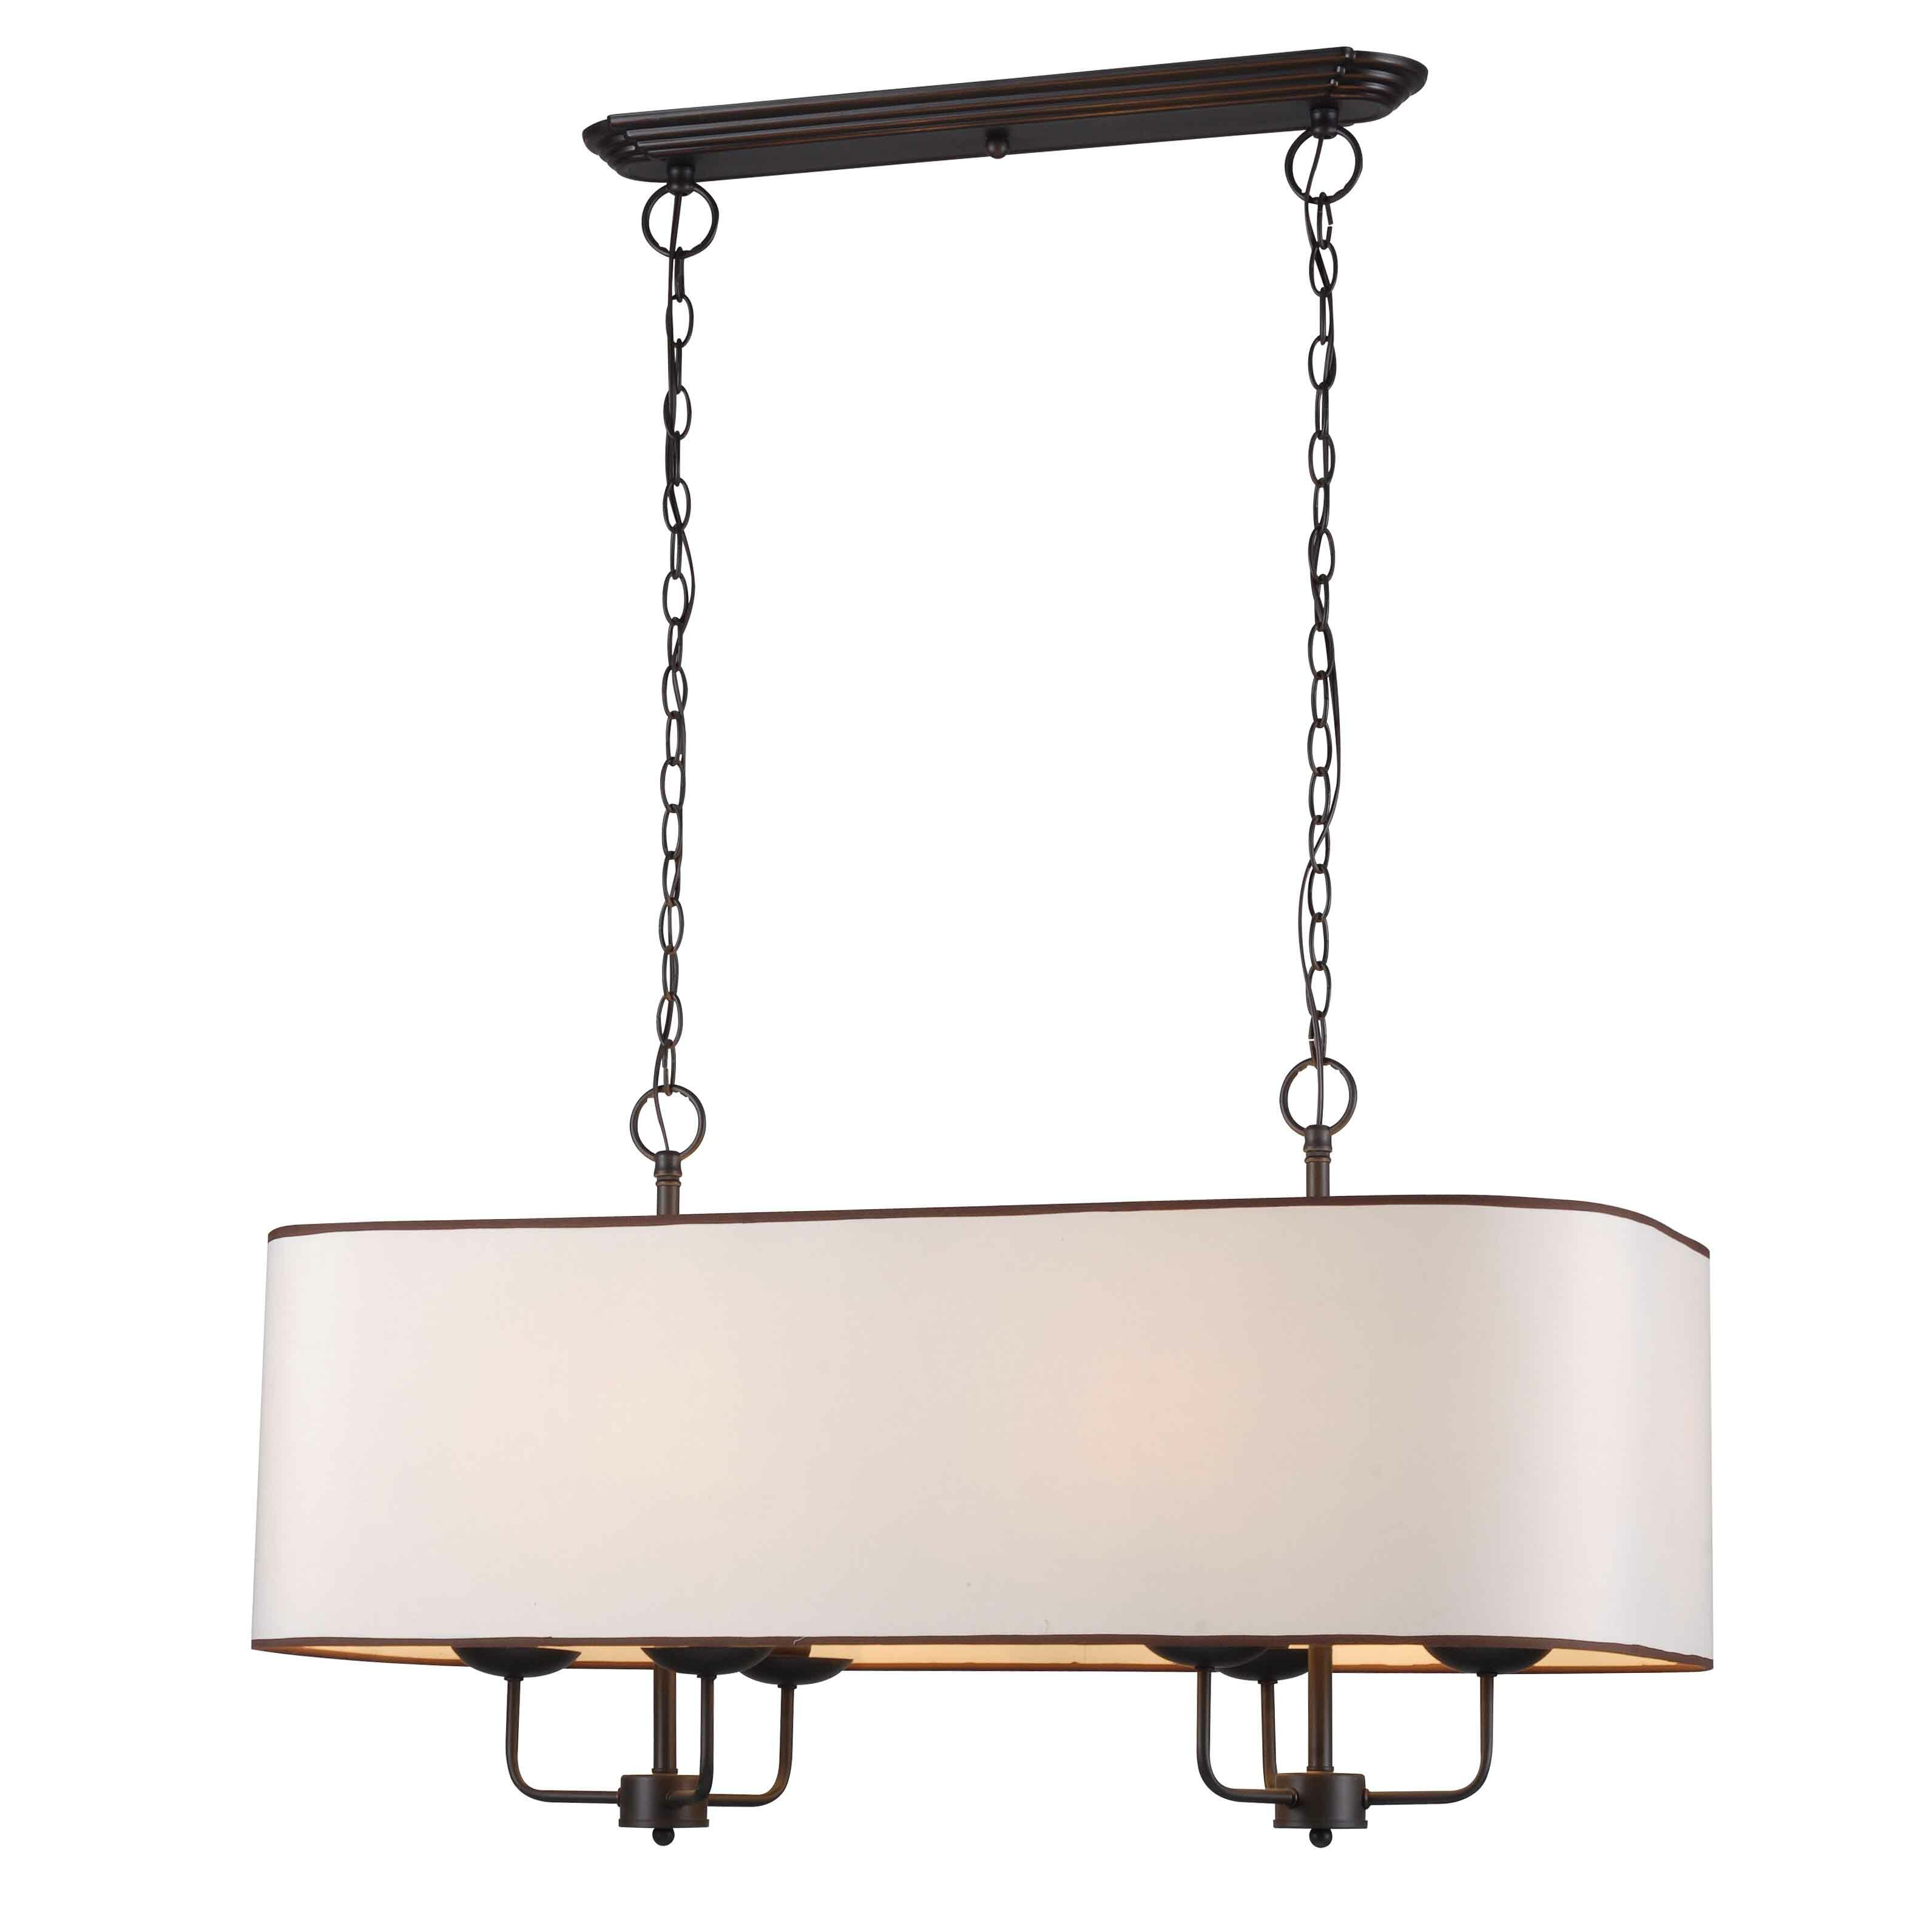 Kitchen Island Pendant Lighting: World Imports Lighting Colonial 6 Light Kitchen Island